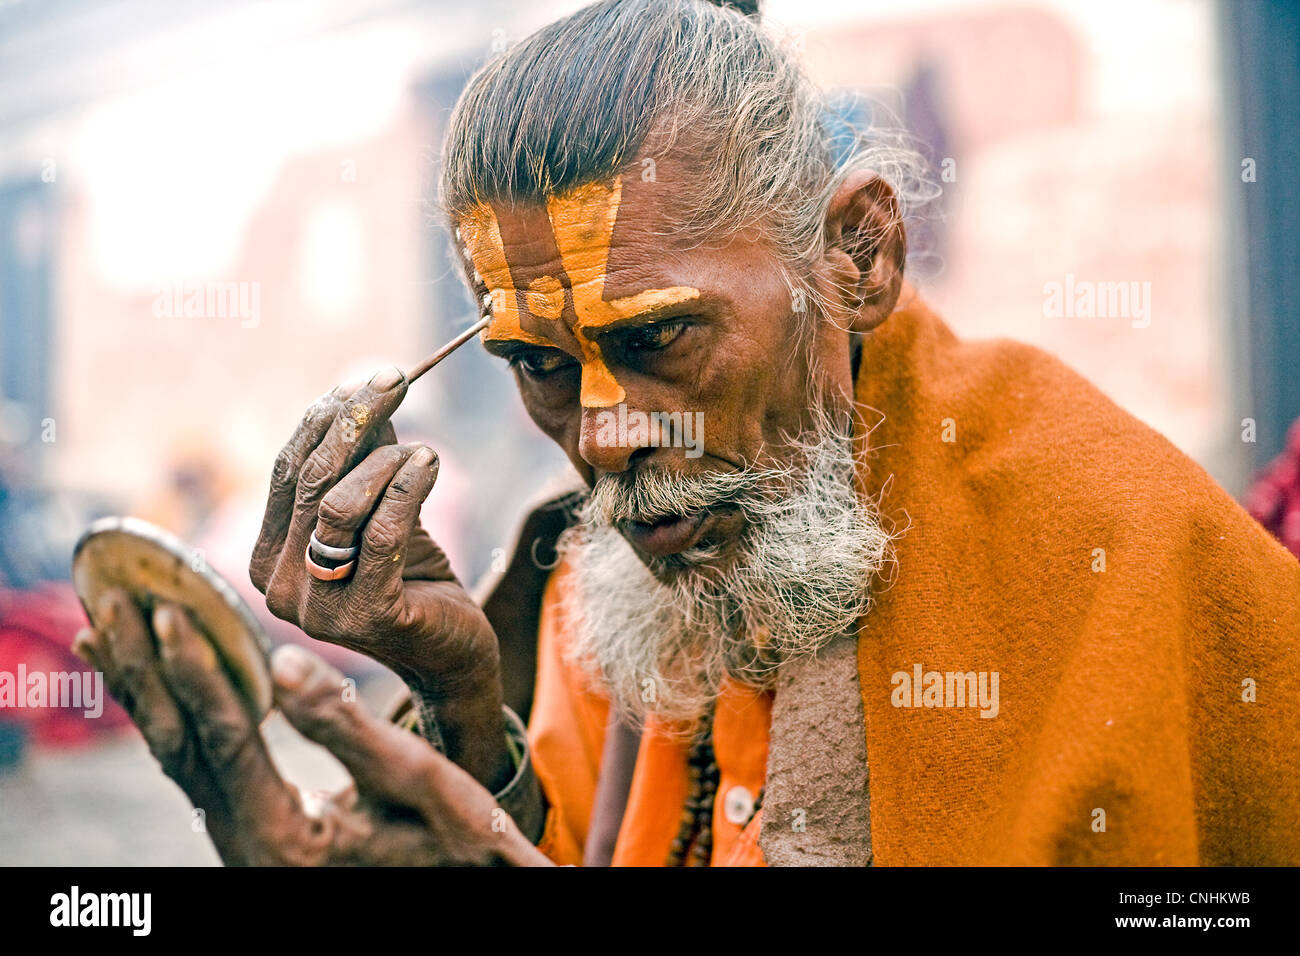 Sadu applying auspicious marks (tilak) during Shivaratri at Pashupatinath - Stock Image